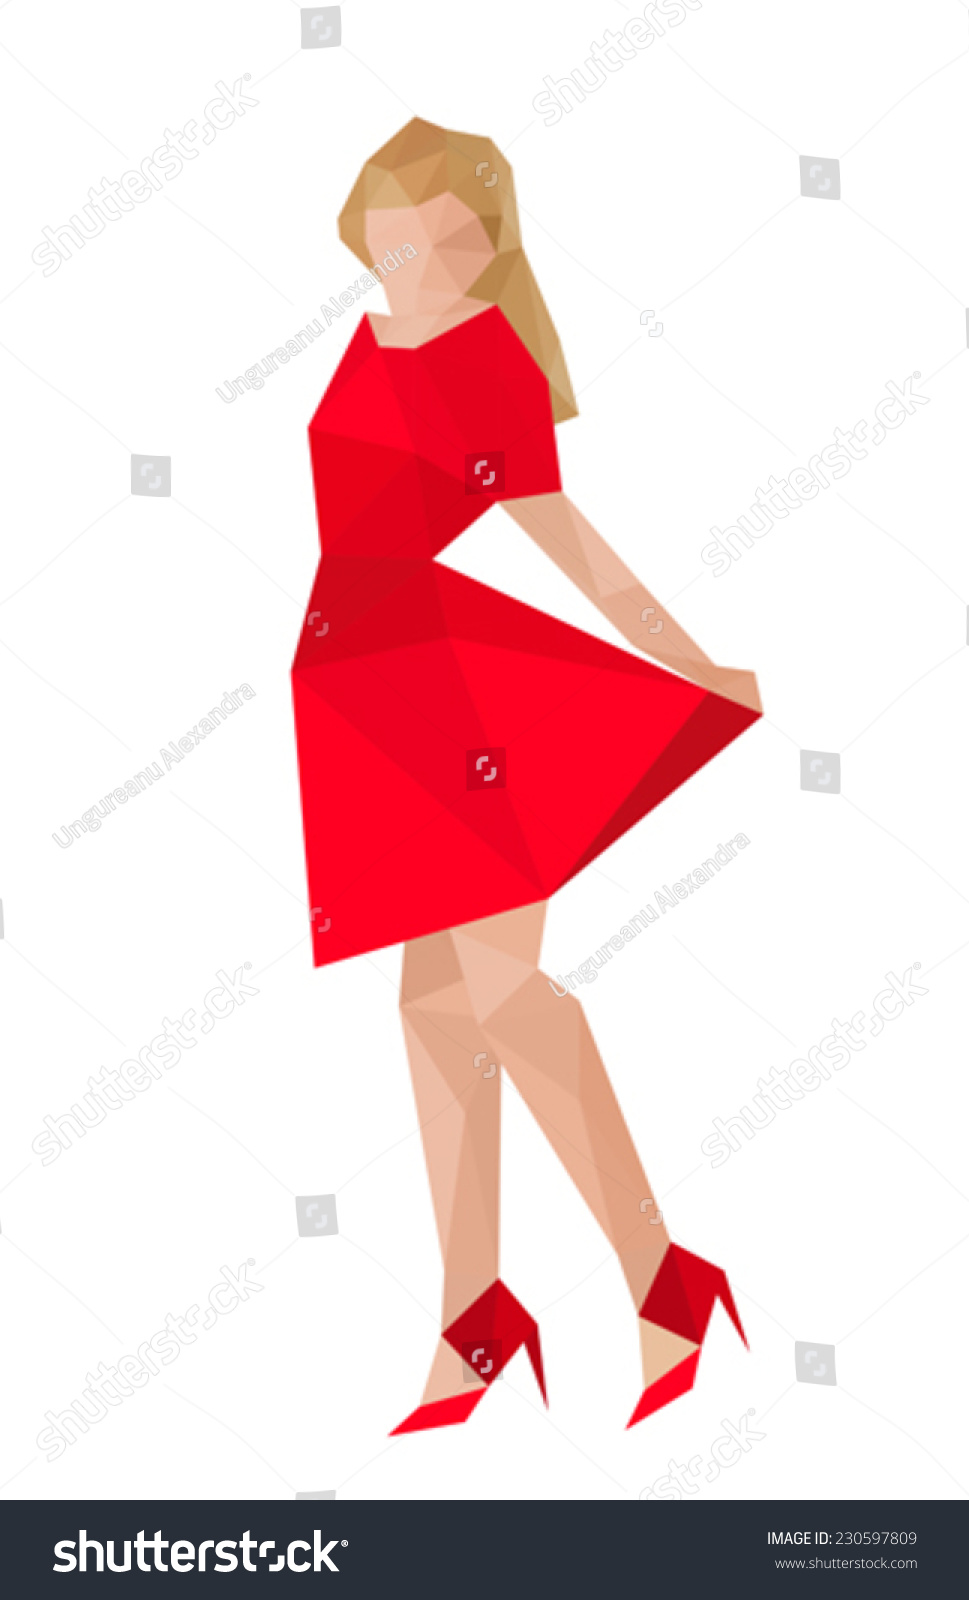 illustration of origami girl with red dress 230597809